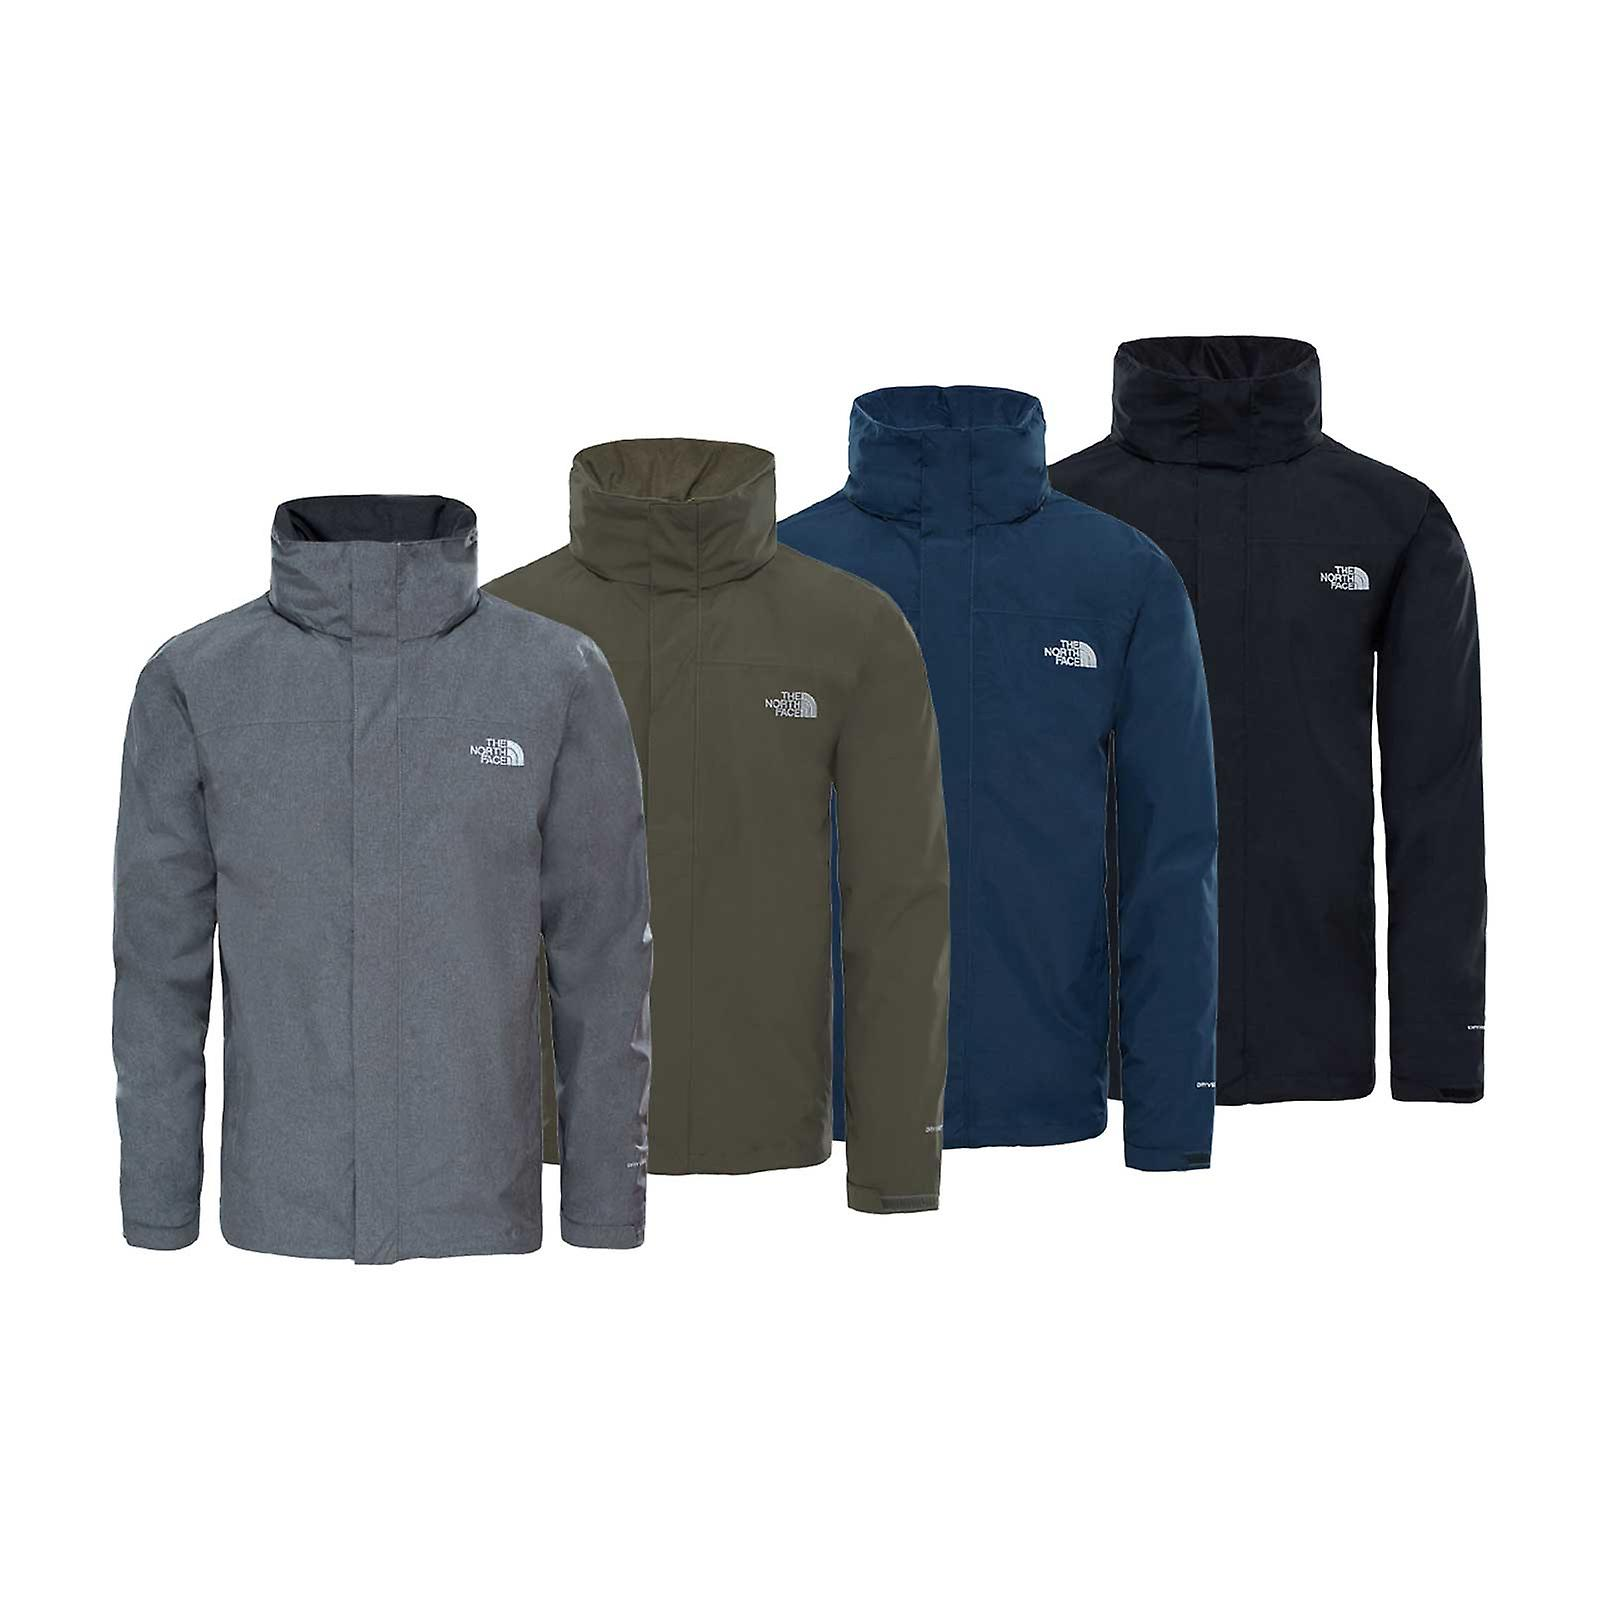 La veste North Face Mens Sangro